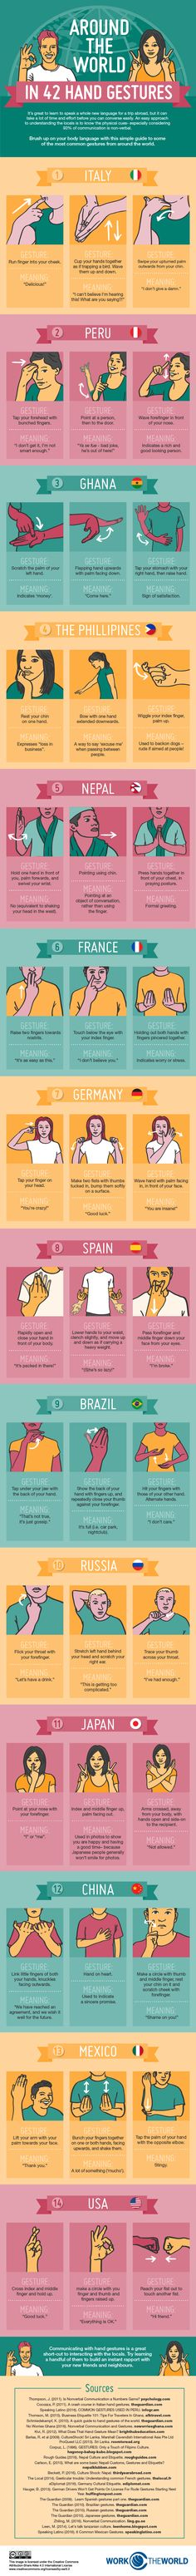 "Body Language EMBLEMS are nonverbal gestures that ""speak"" a clear message in the language of the culture  #Infografía #Infographic"